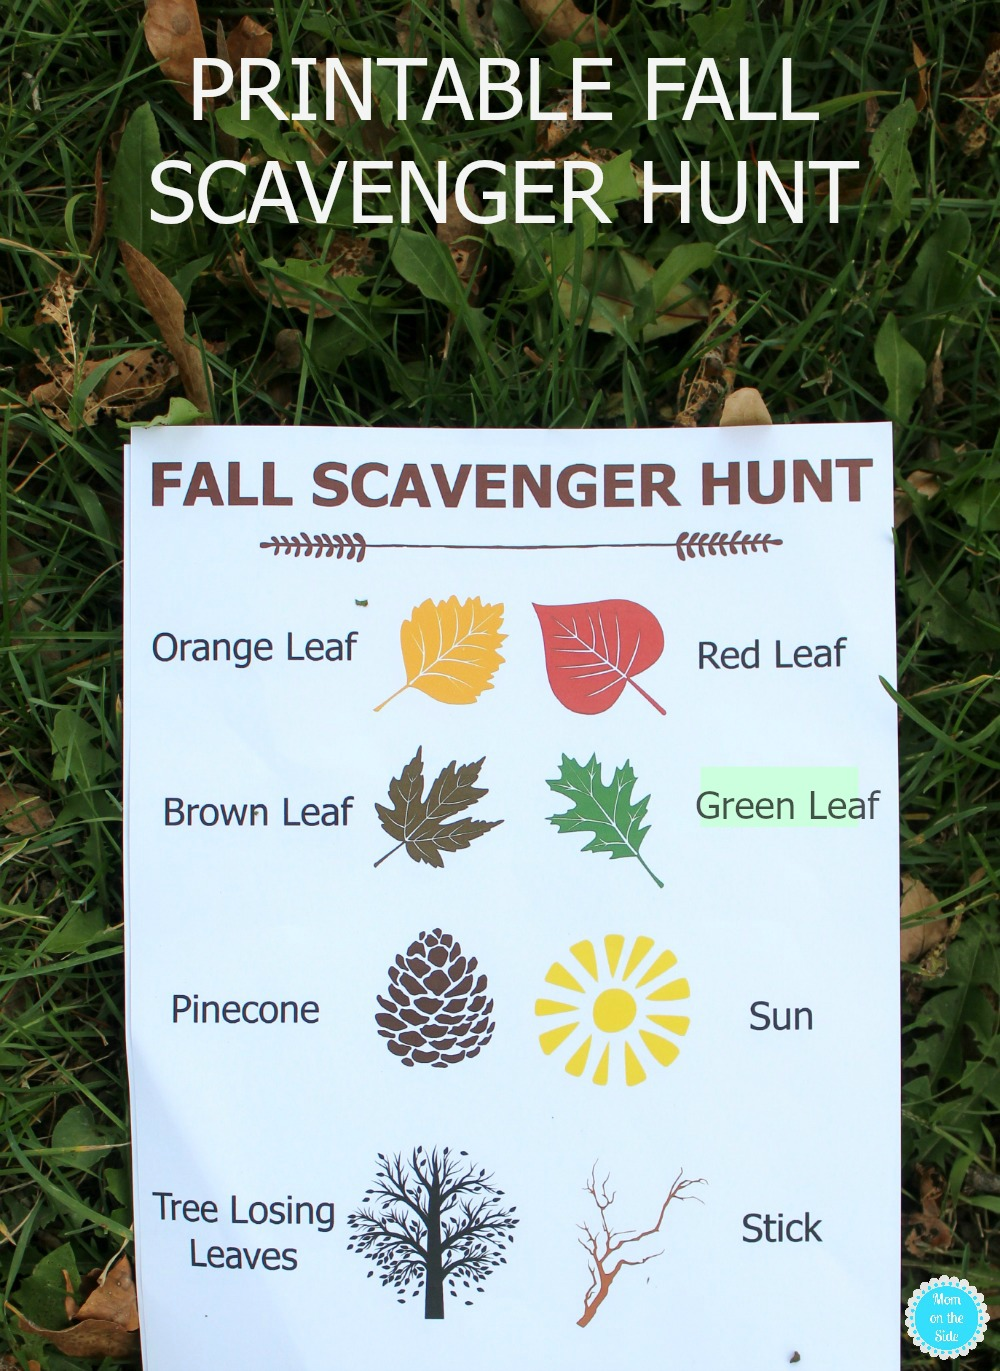 Fun and Free Printable Fall Scavenger Hunt for Kids to do!